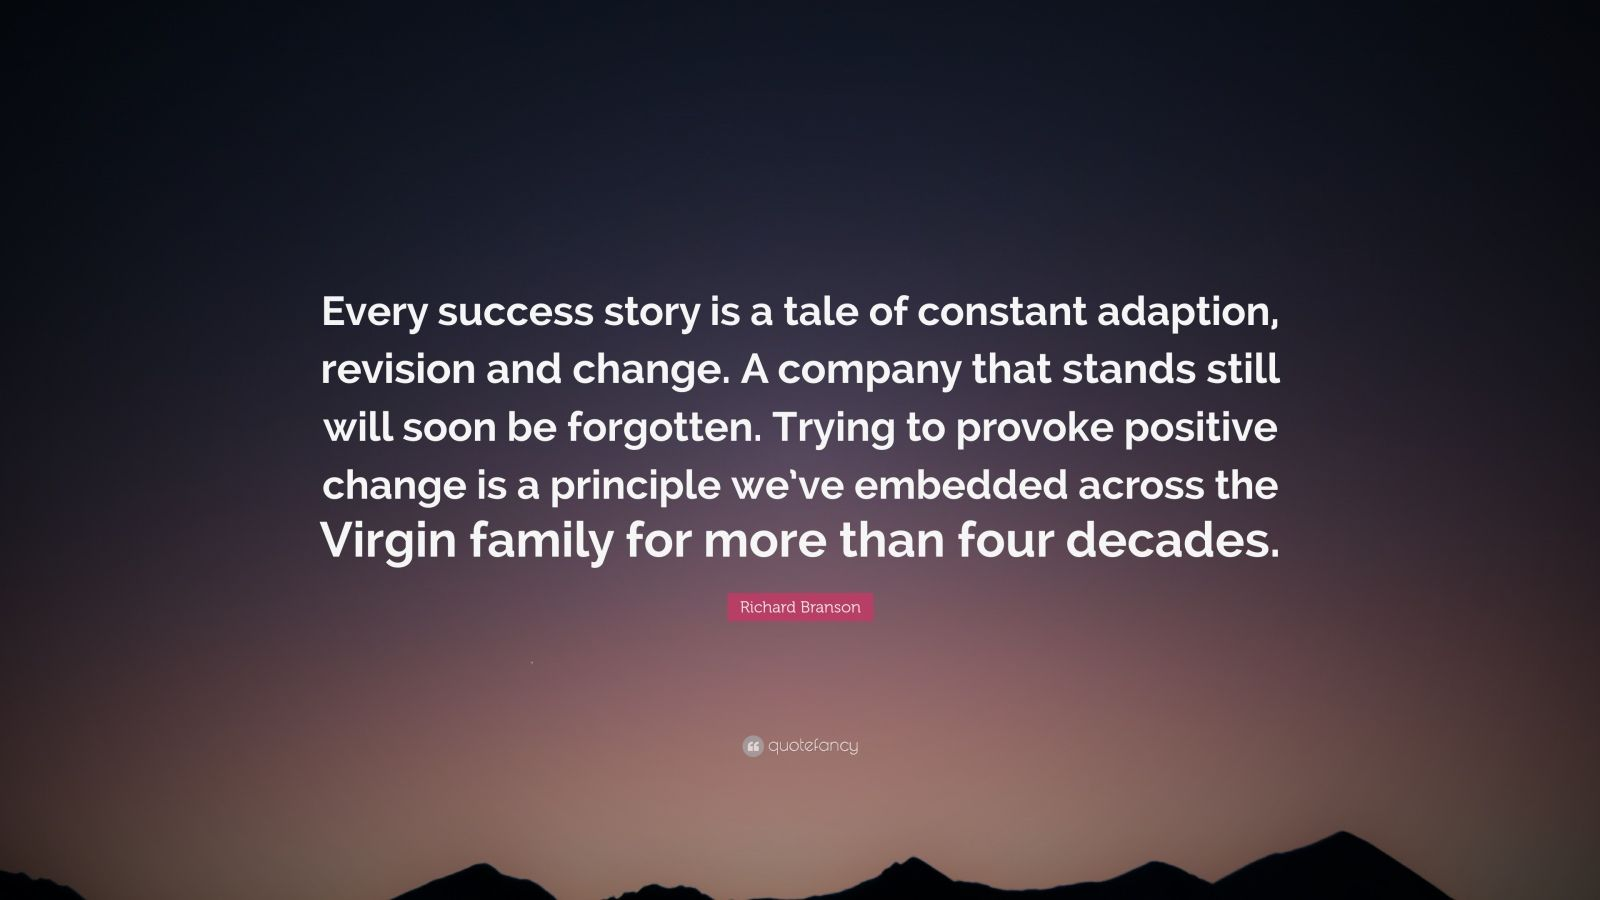 "Richard Branson Quote: ""Every success story is a tale of constant adaption, revision and change. A company that stands still will soon be forgotten. Trying to provoke positive change is a principle we've embedded across the Virgin family for more than four decades."""